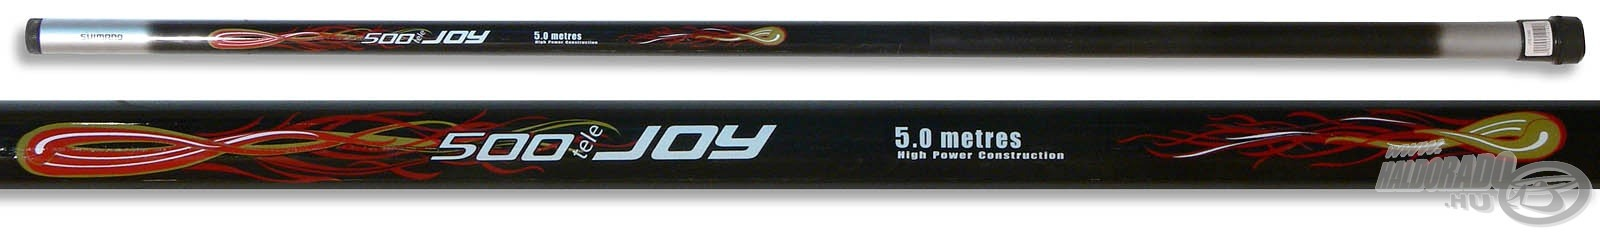 SHIMANO Joy 10500 spiccbot 2990Ft